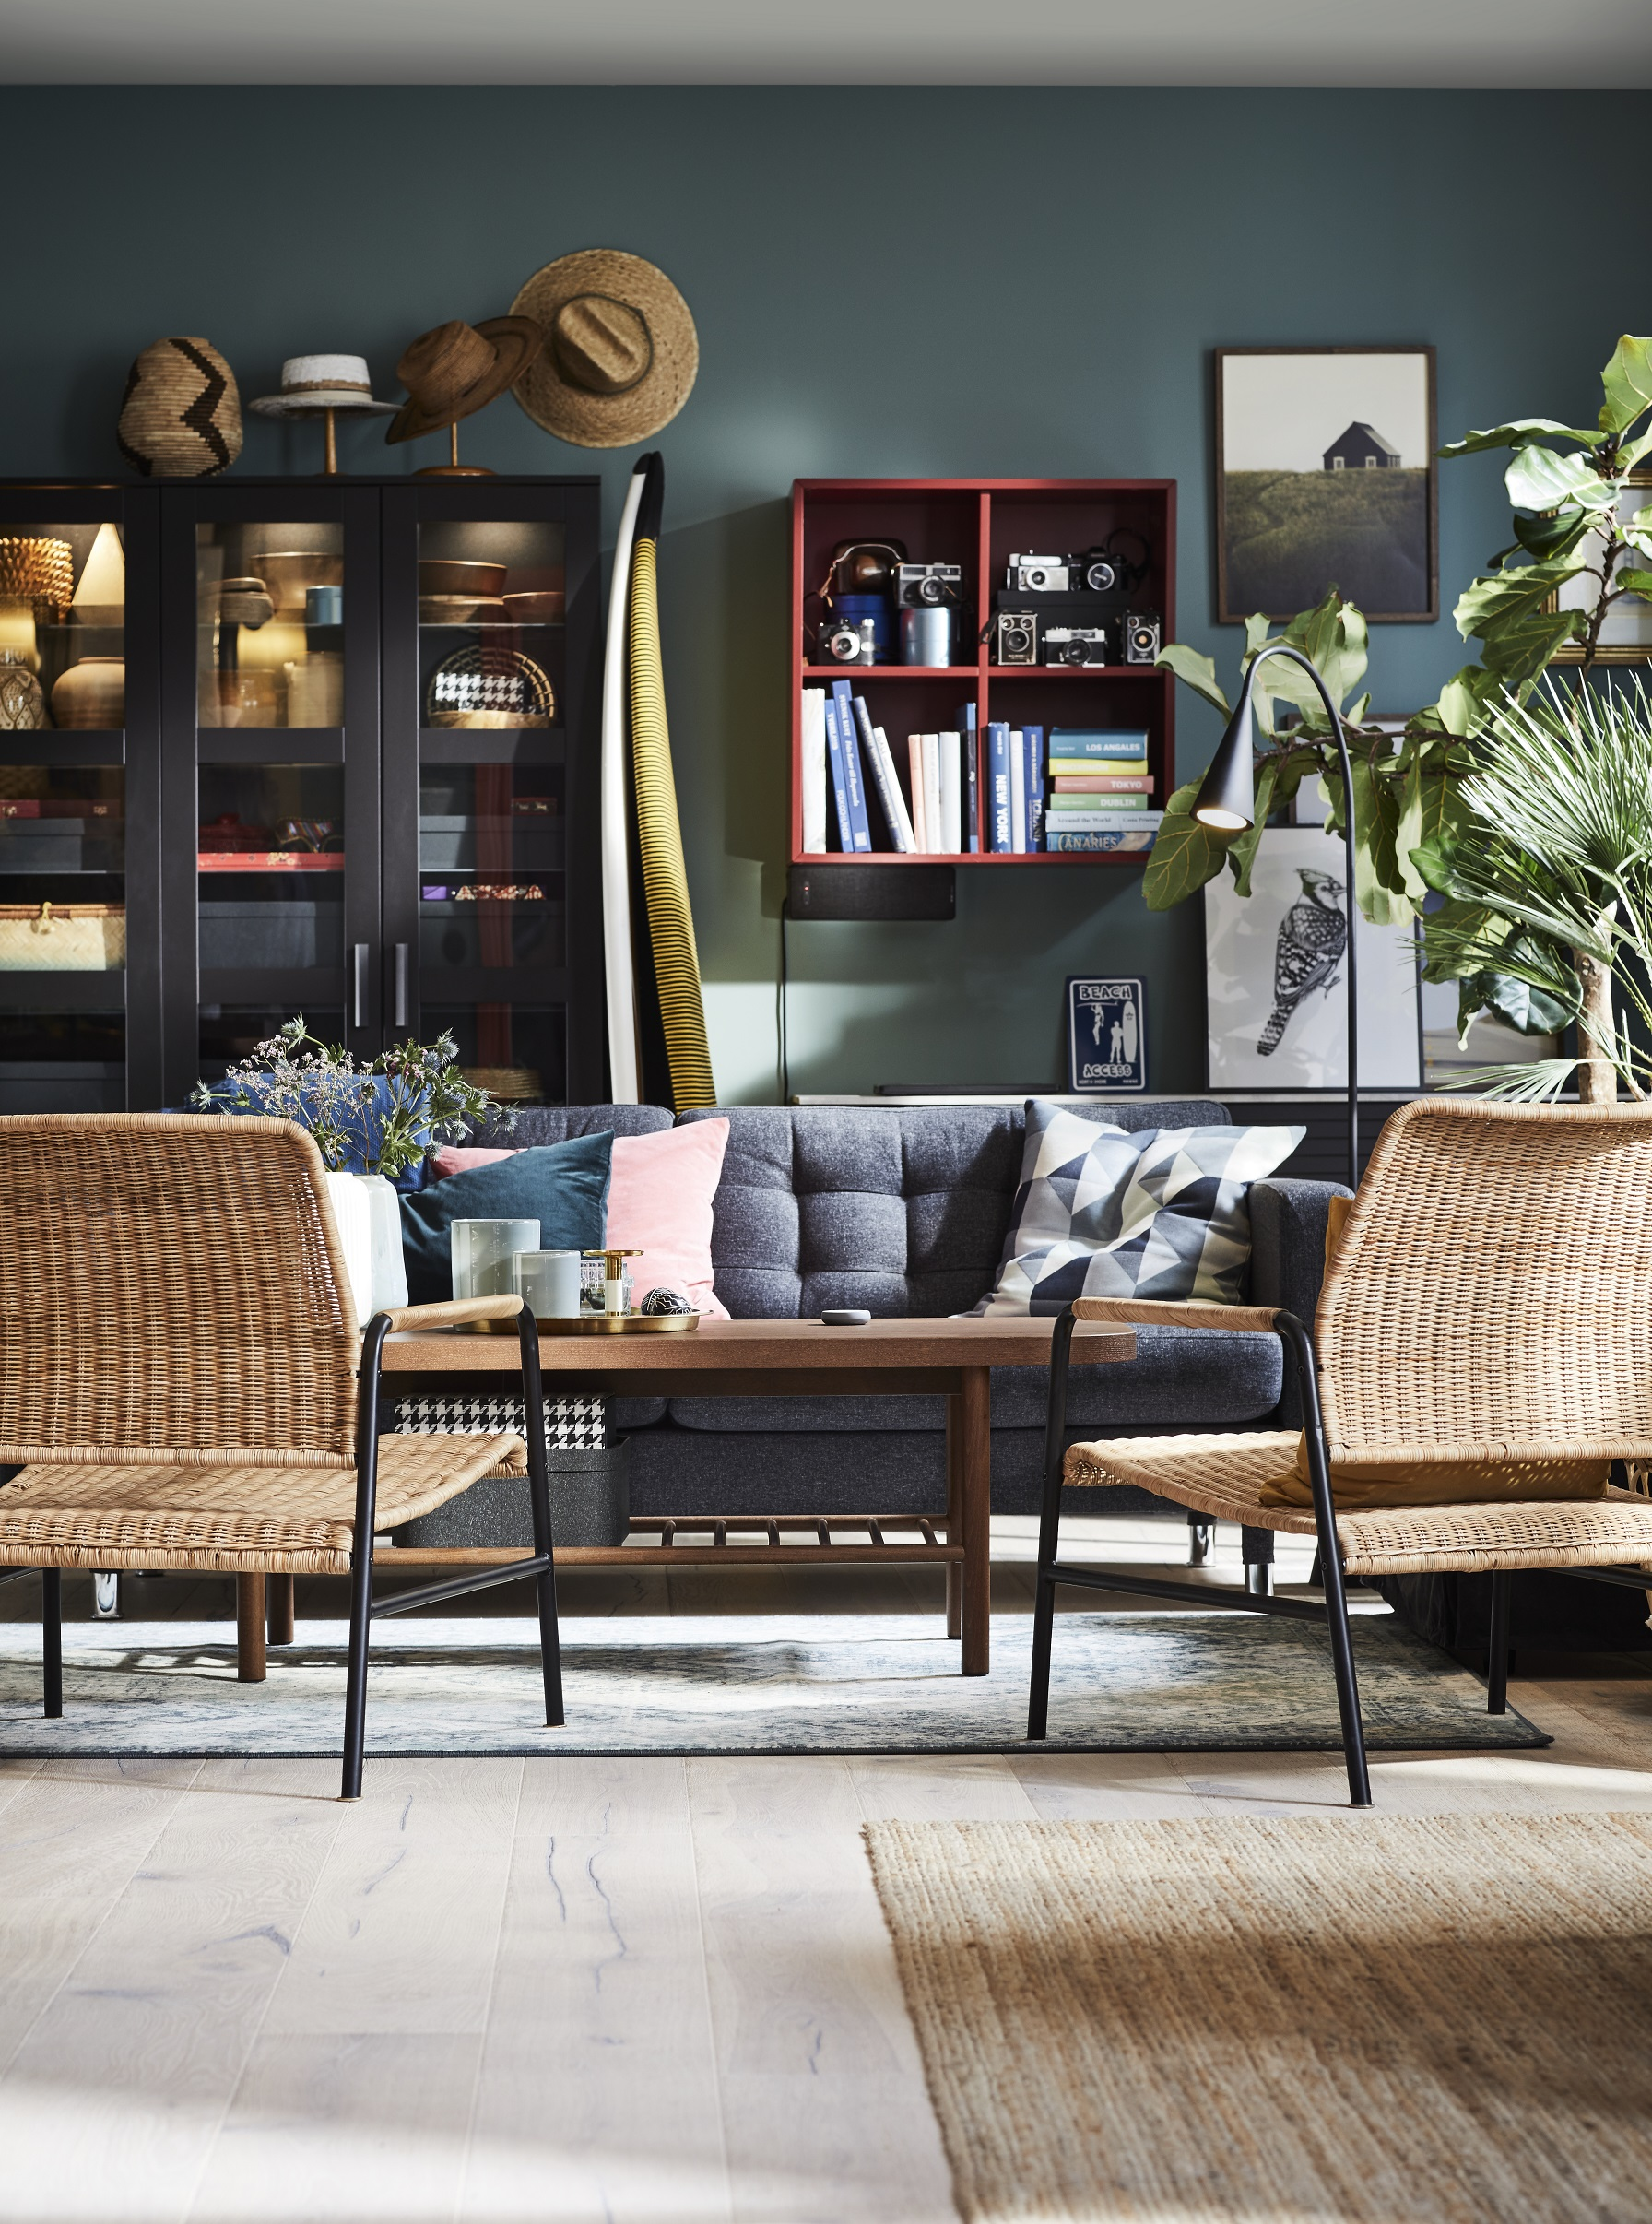 remarkable ikea kitchen catalogue 2020 | IKEA Catalog 2020: Get Ready For A Fresh Start — THE NORDROOM